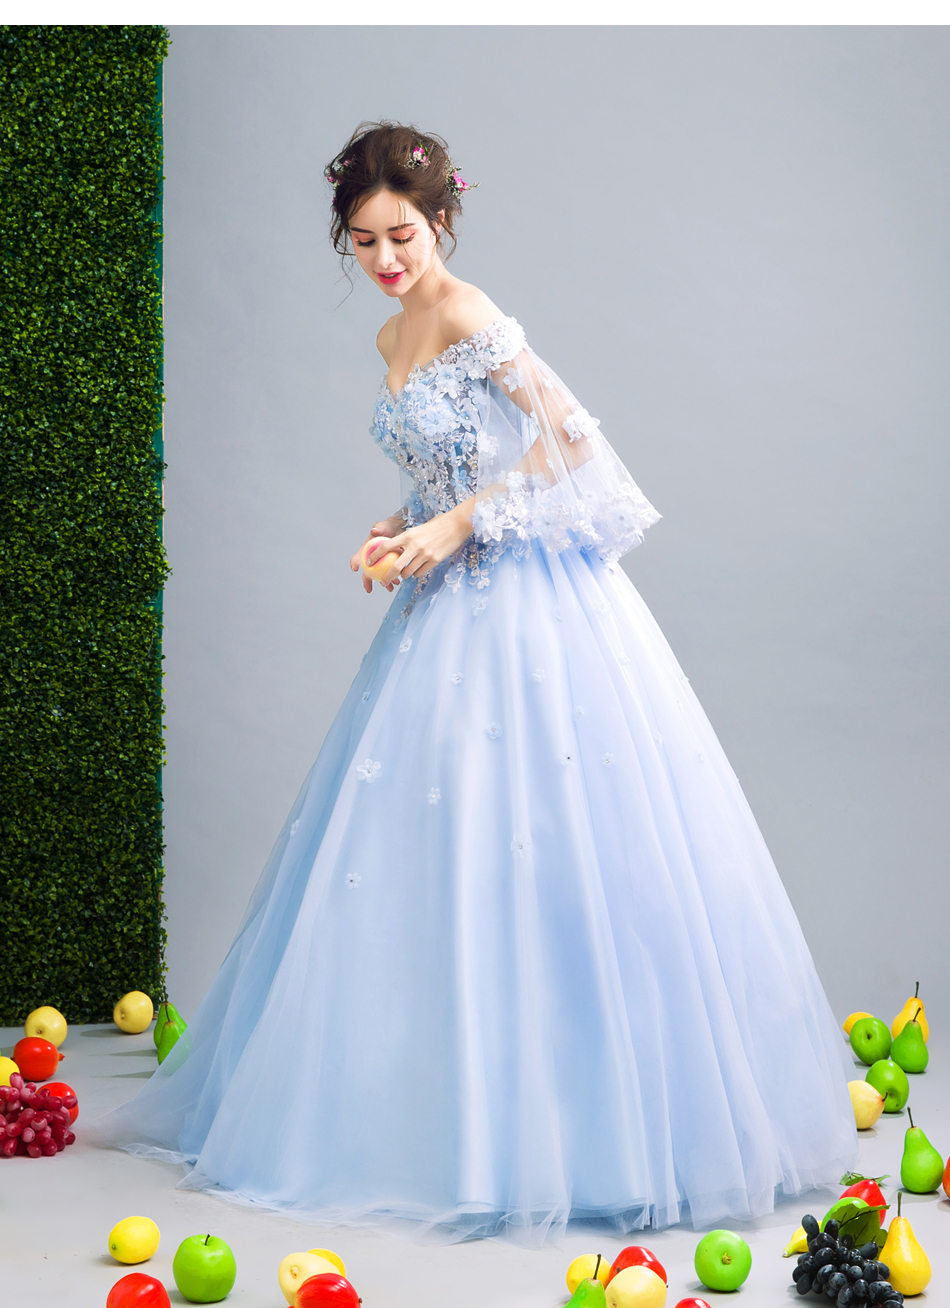 Angel Wedding Dress Marriage Bride Bridal Gown Vestido De Noiva Fairy, blue, handmade petals 2017 257 18